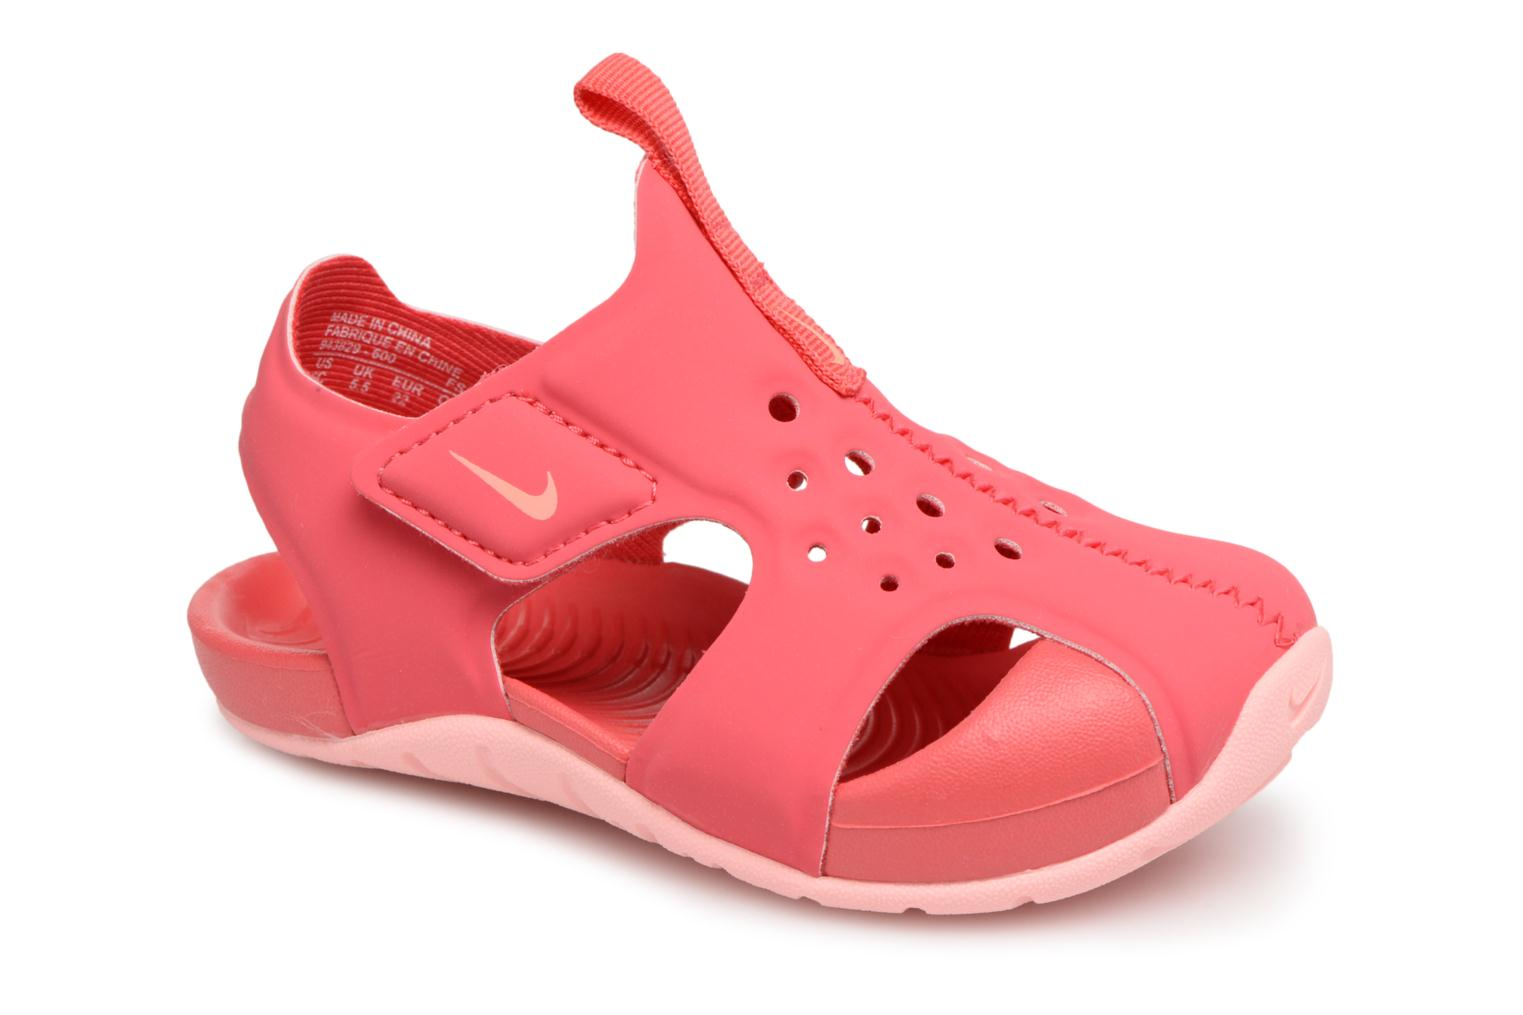 36a3134f64a54 Nike Nike Sunray Protect 2 (Td) (Rose) - Sandales et nu-pieds chez ...